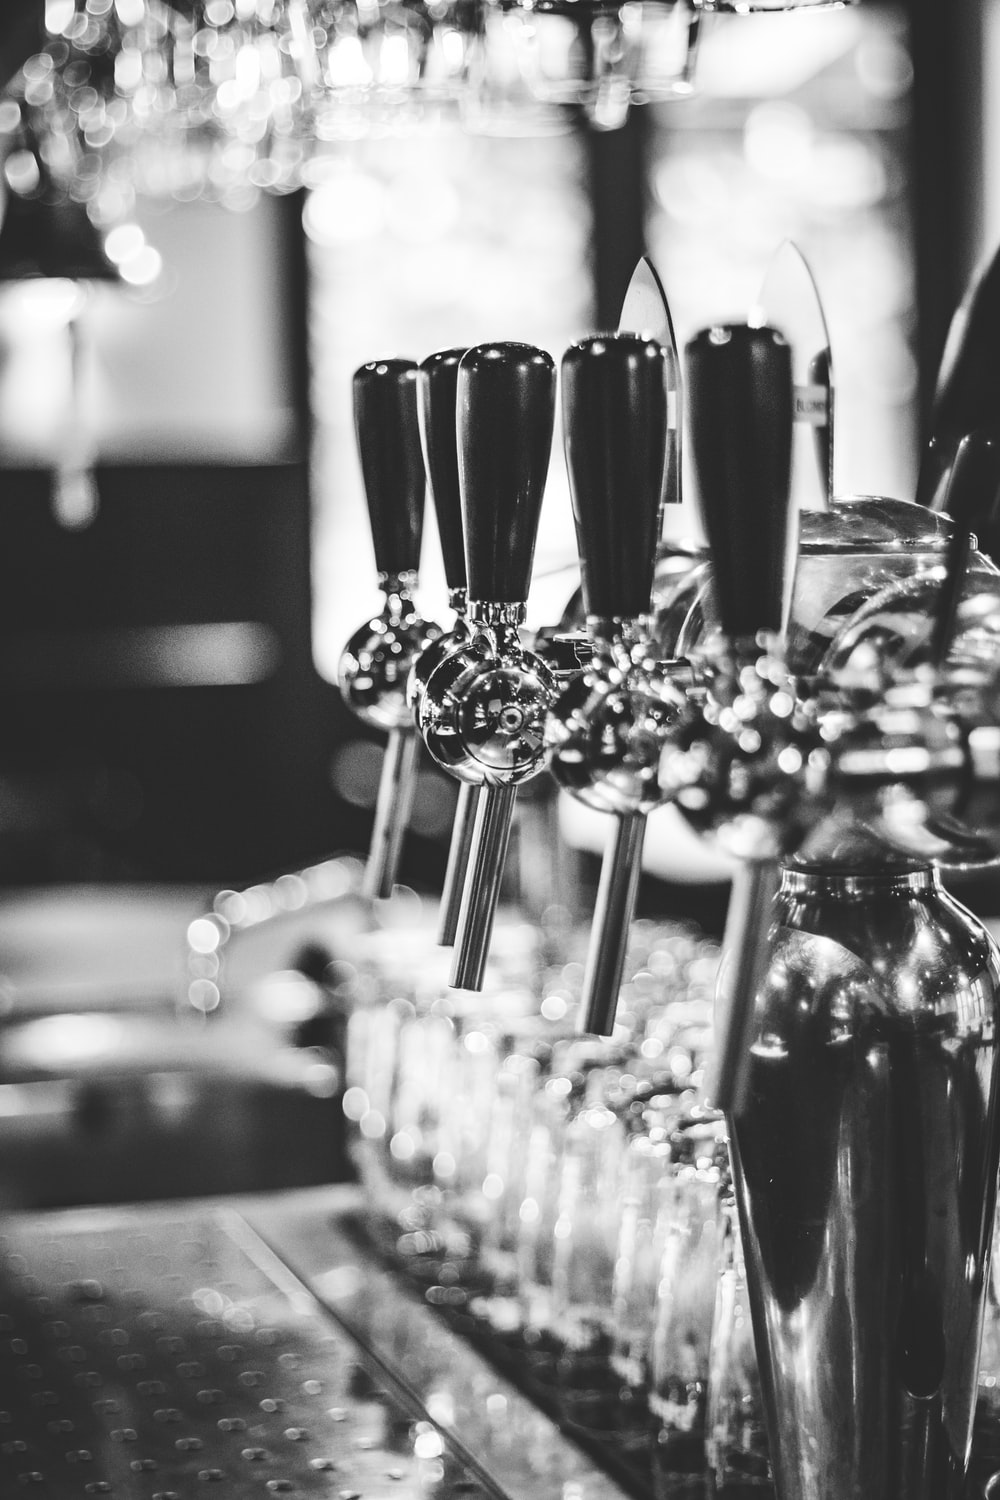 grayscale photography of beer tap handle